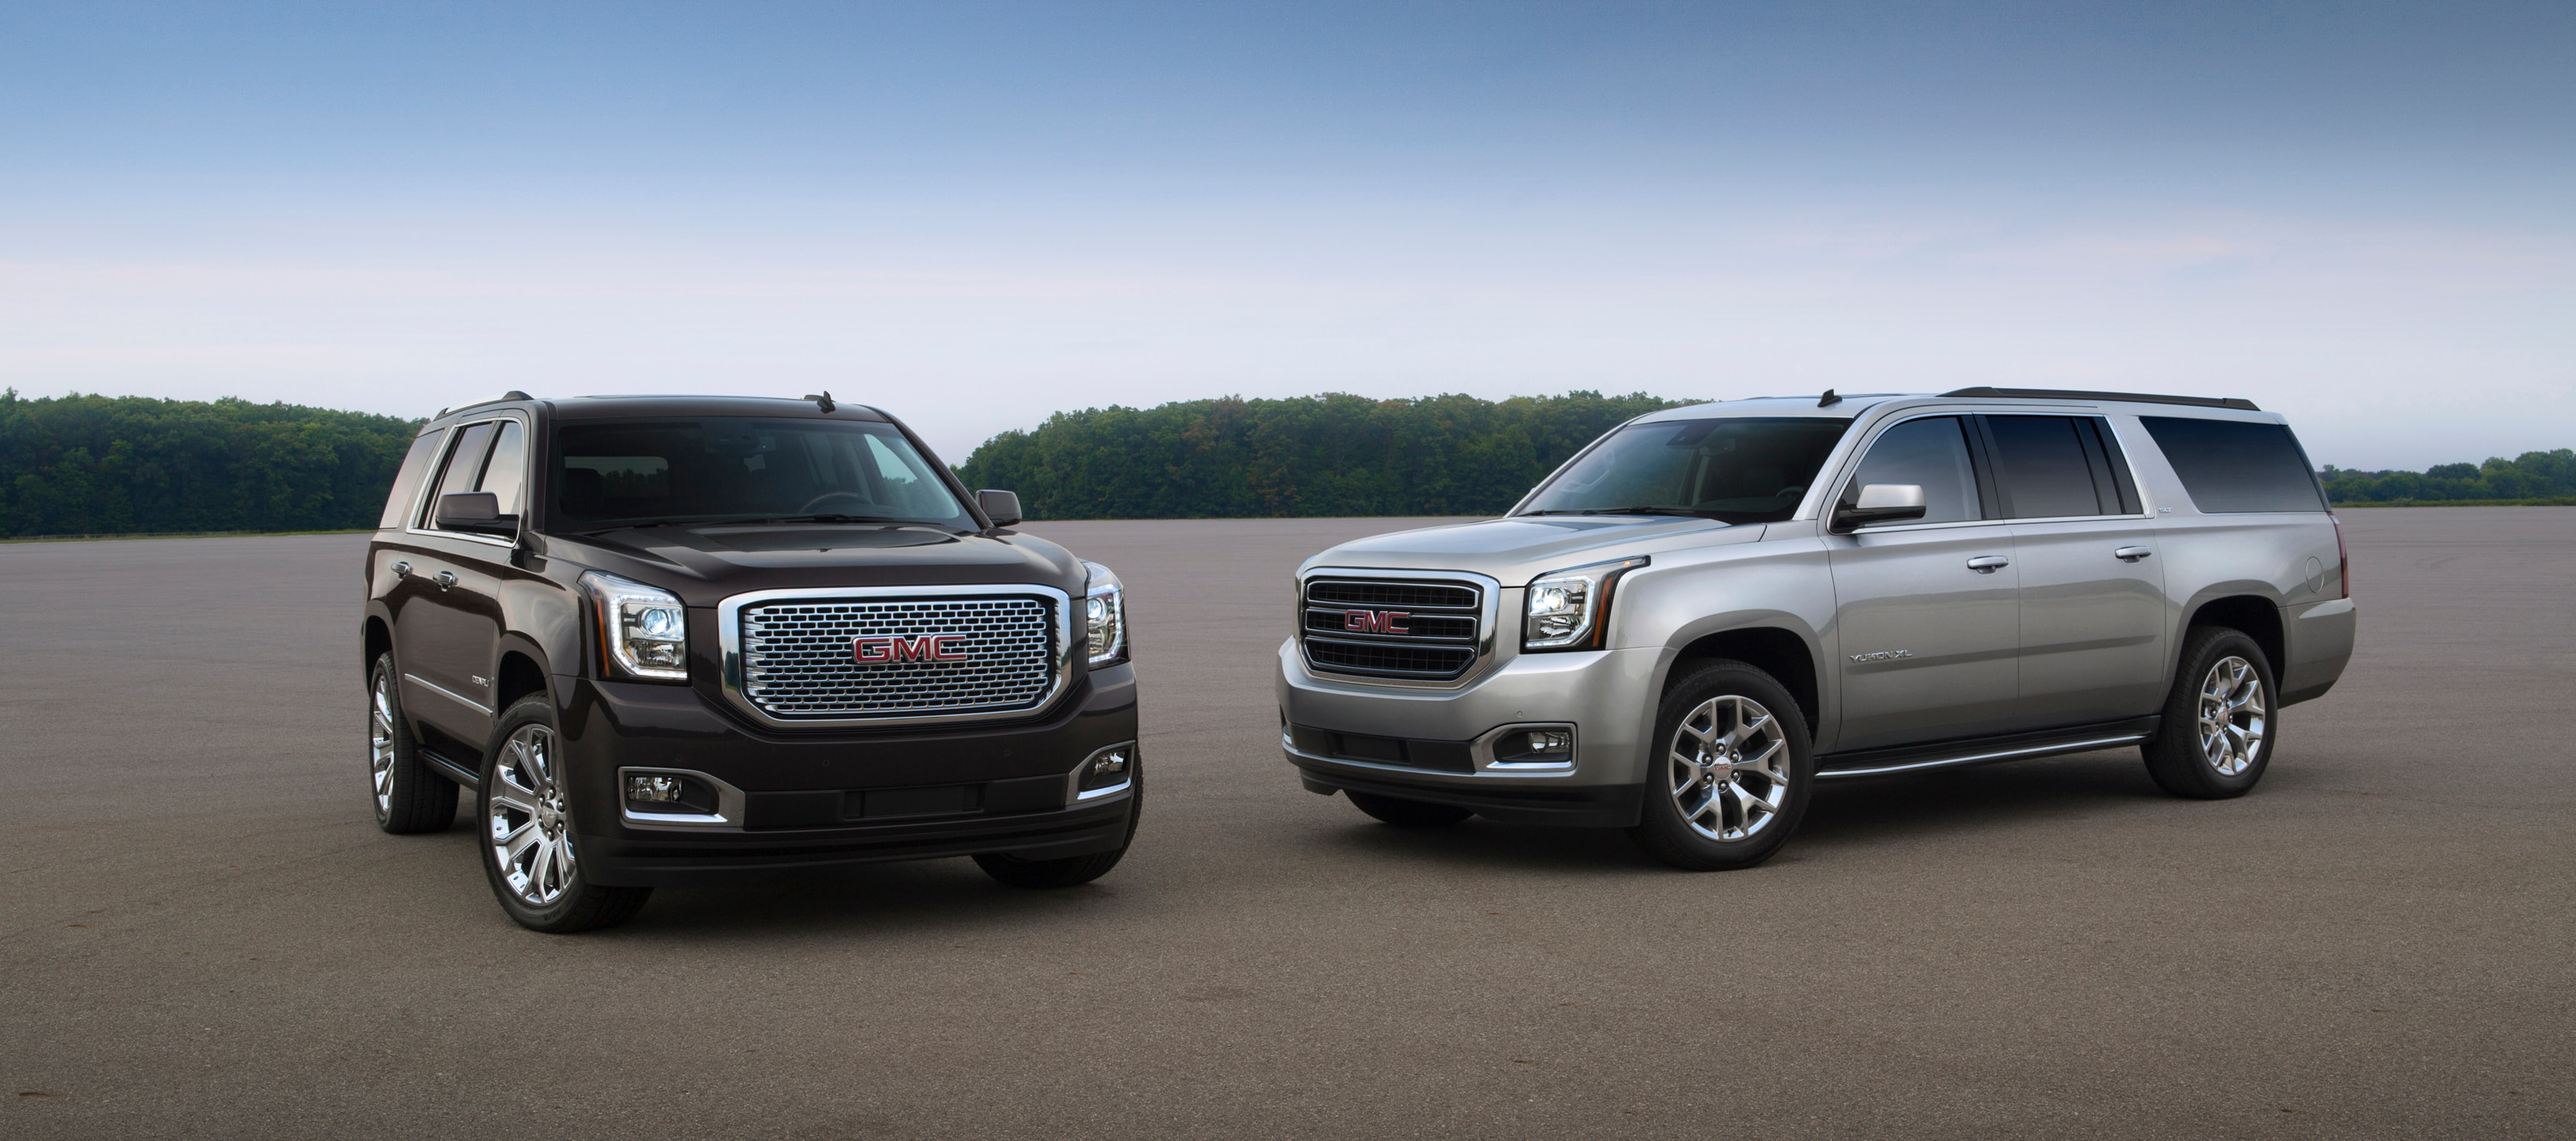 2016 Gmc Yukon Xl Denali Specifications